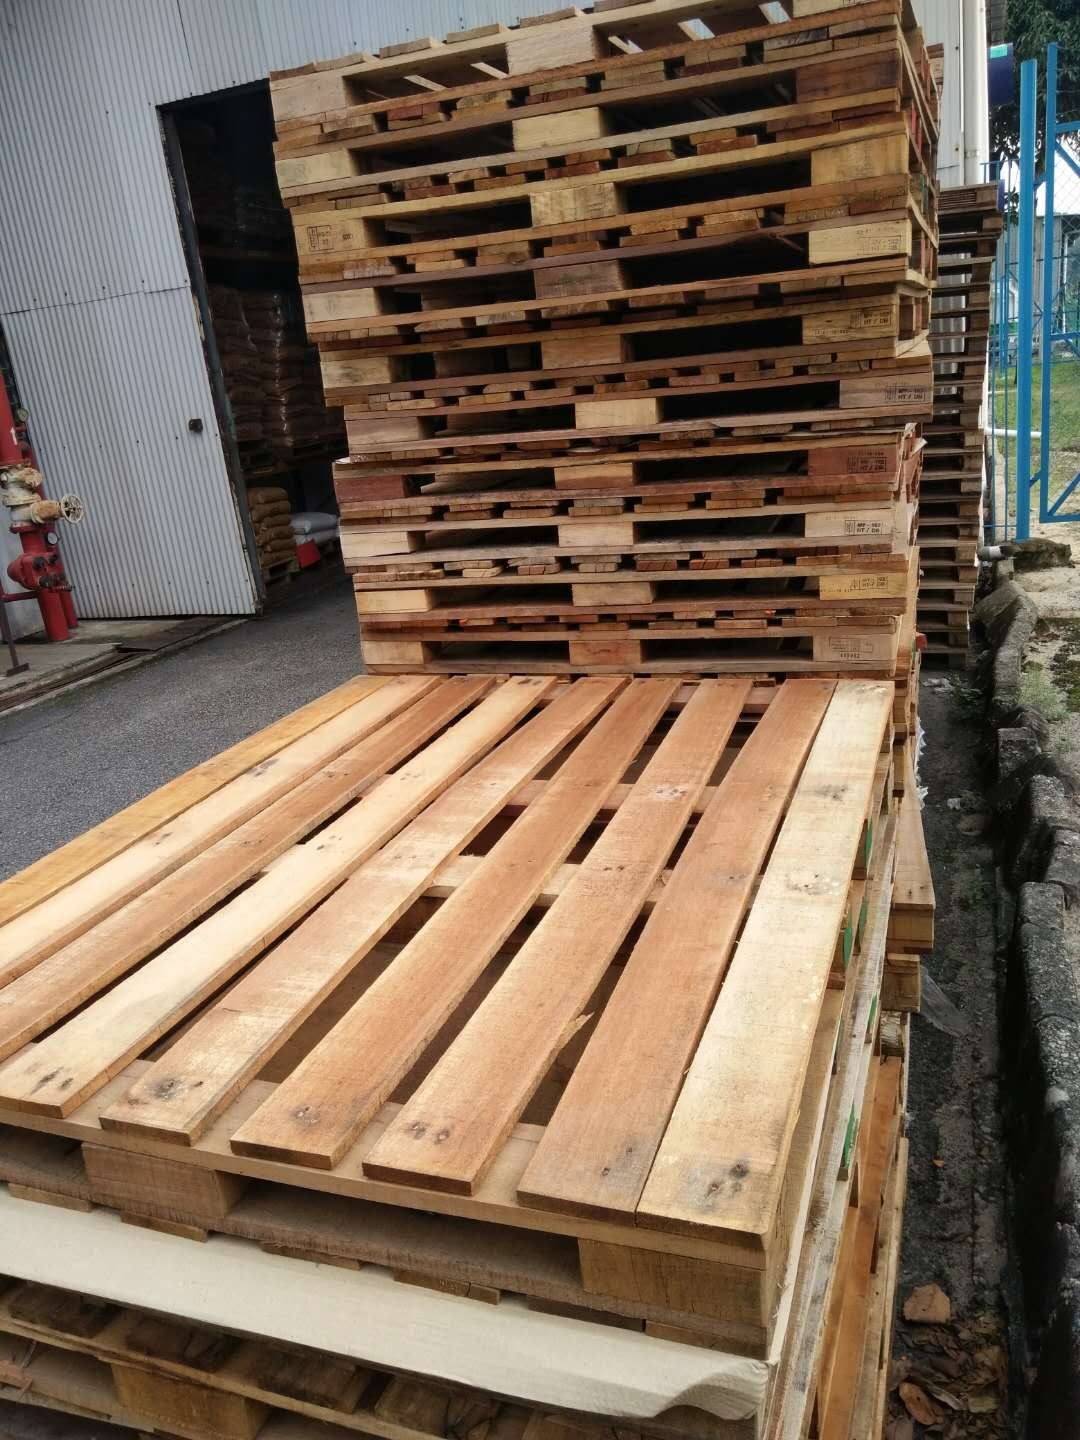 Wooden Pallet (1200*1200*130mmh) limited quantity 90pcs only for sales.